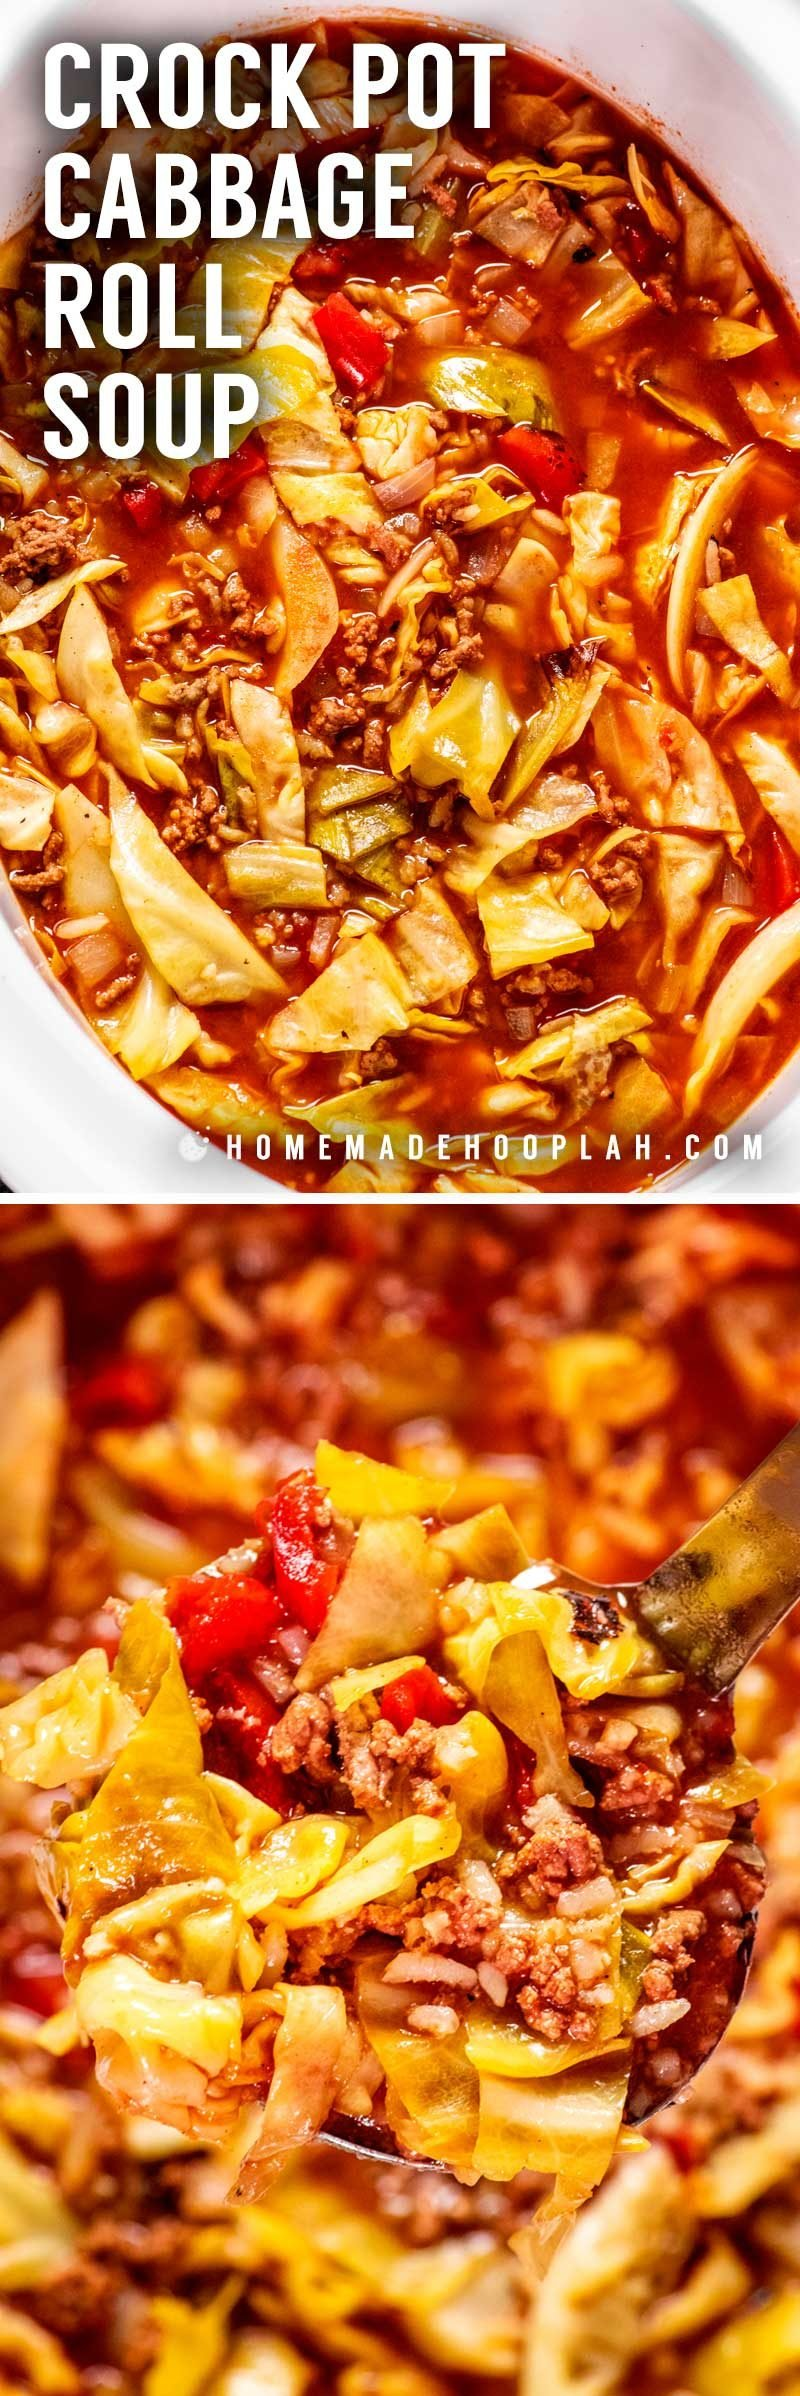 How to make cabbage roll soup in a slow cooker.